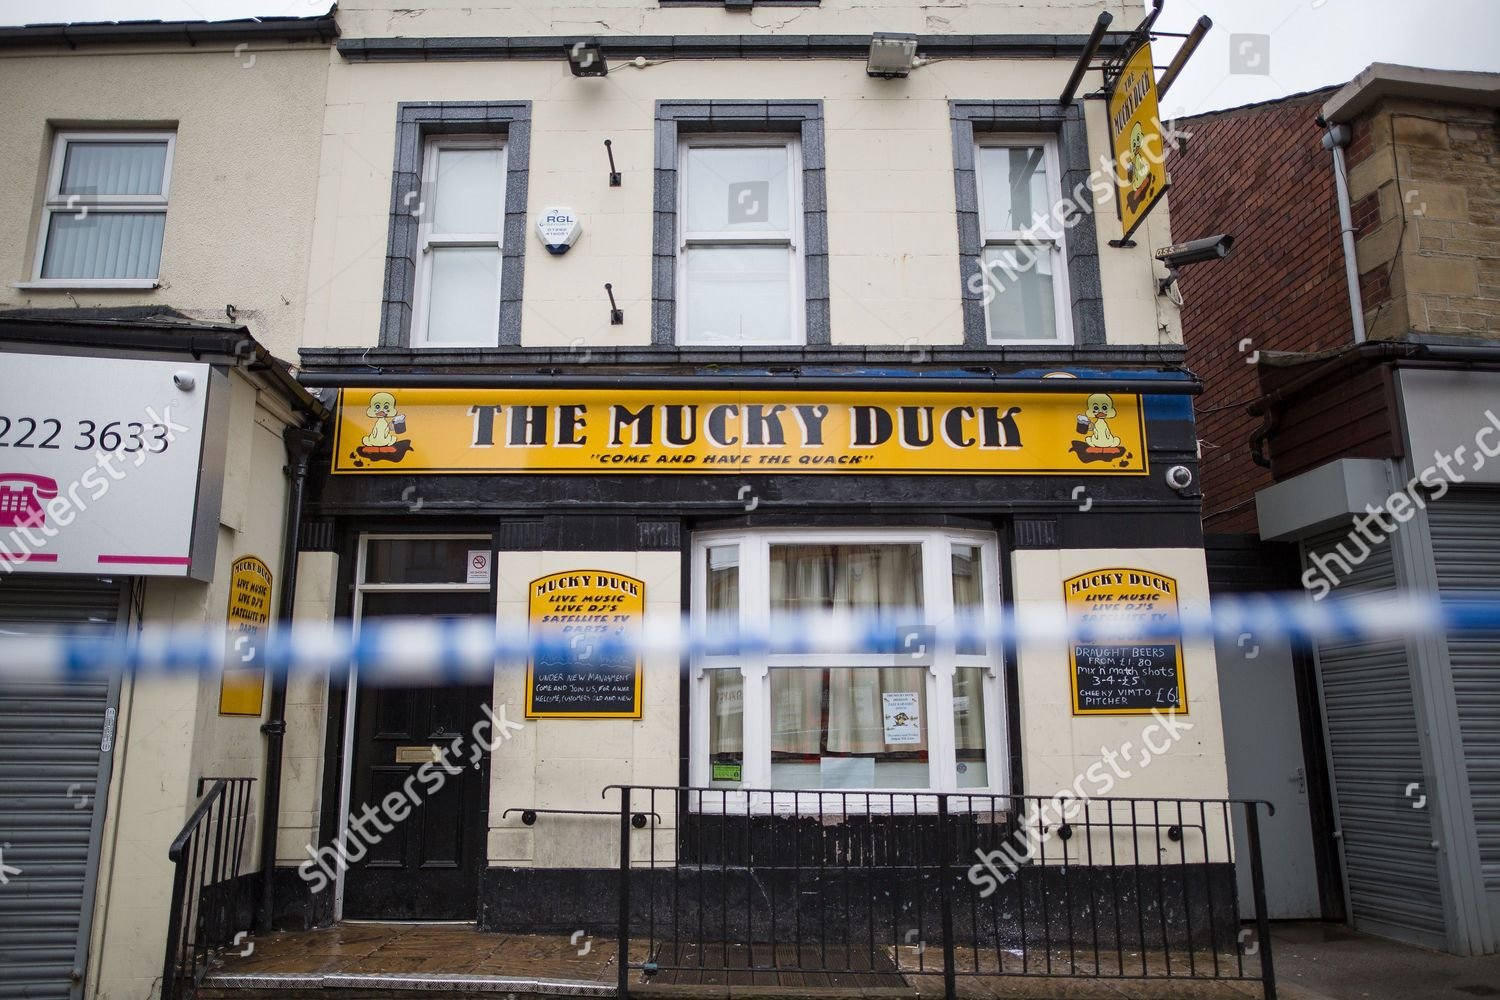 Police cordon around Mucky Duck pub Editorial Stock Photo